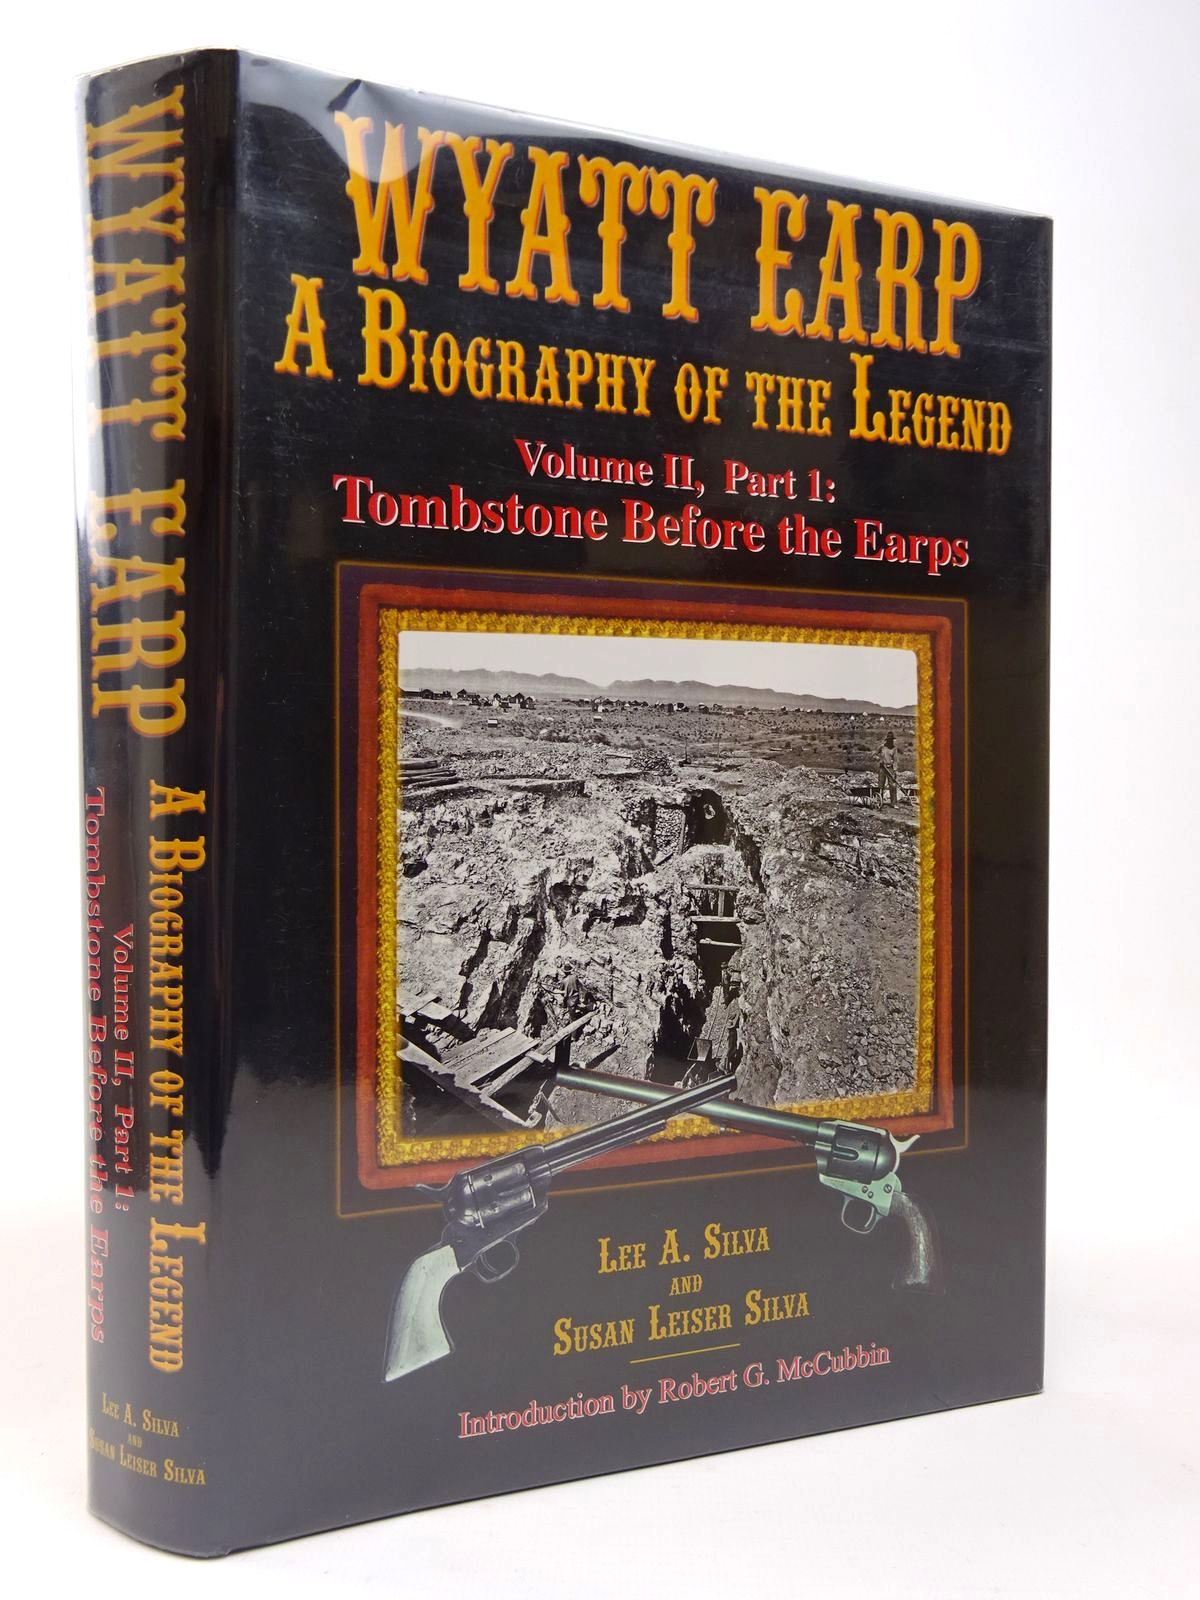 Photo of WYATT EARP A BIOGRAPHY OF THE LEGEND VOLUME II, PART 1: TOMBSTONE BEFORE THE EARPS